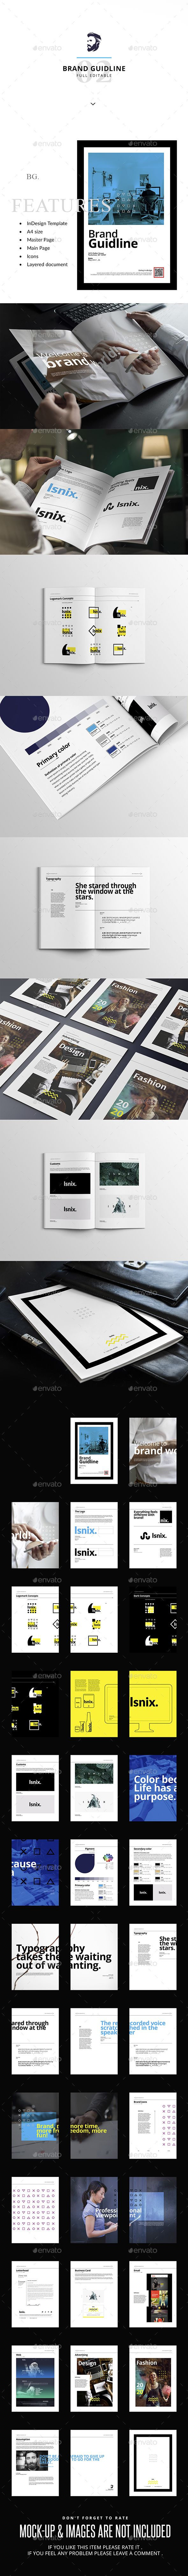 A4 Brand Guidlines — Photoshop PSD #clean #style guide • Download ➝ https://graphicriver.net/item/a4-brand-guidlines/19376236?ref=pxcr